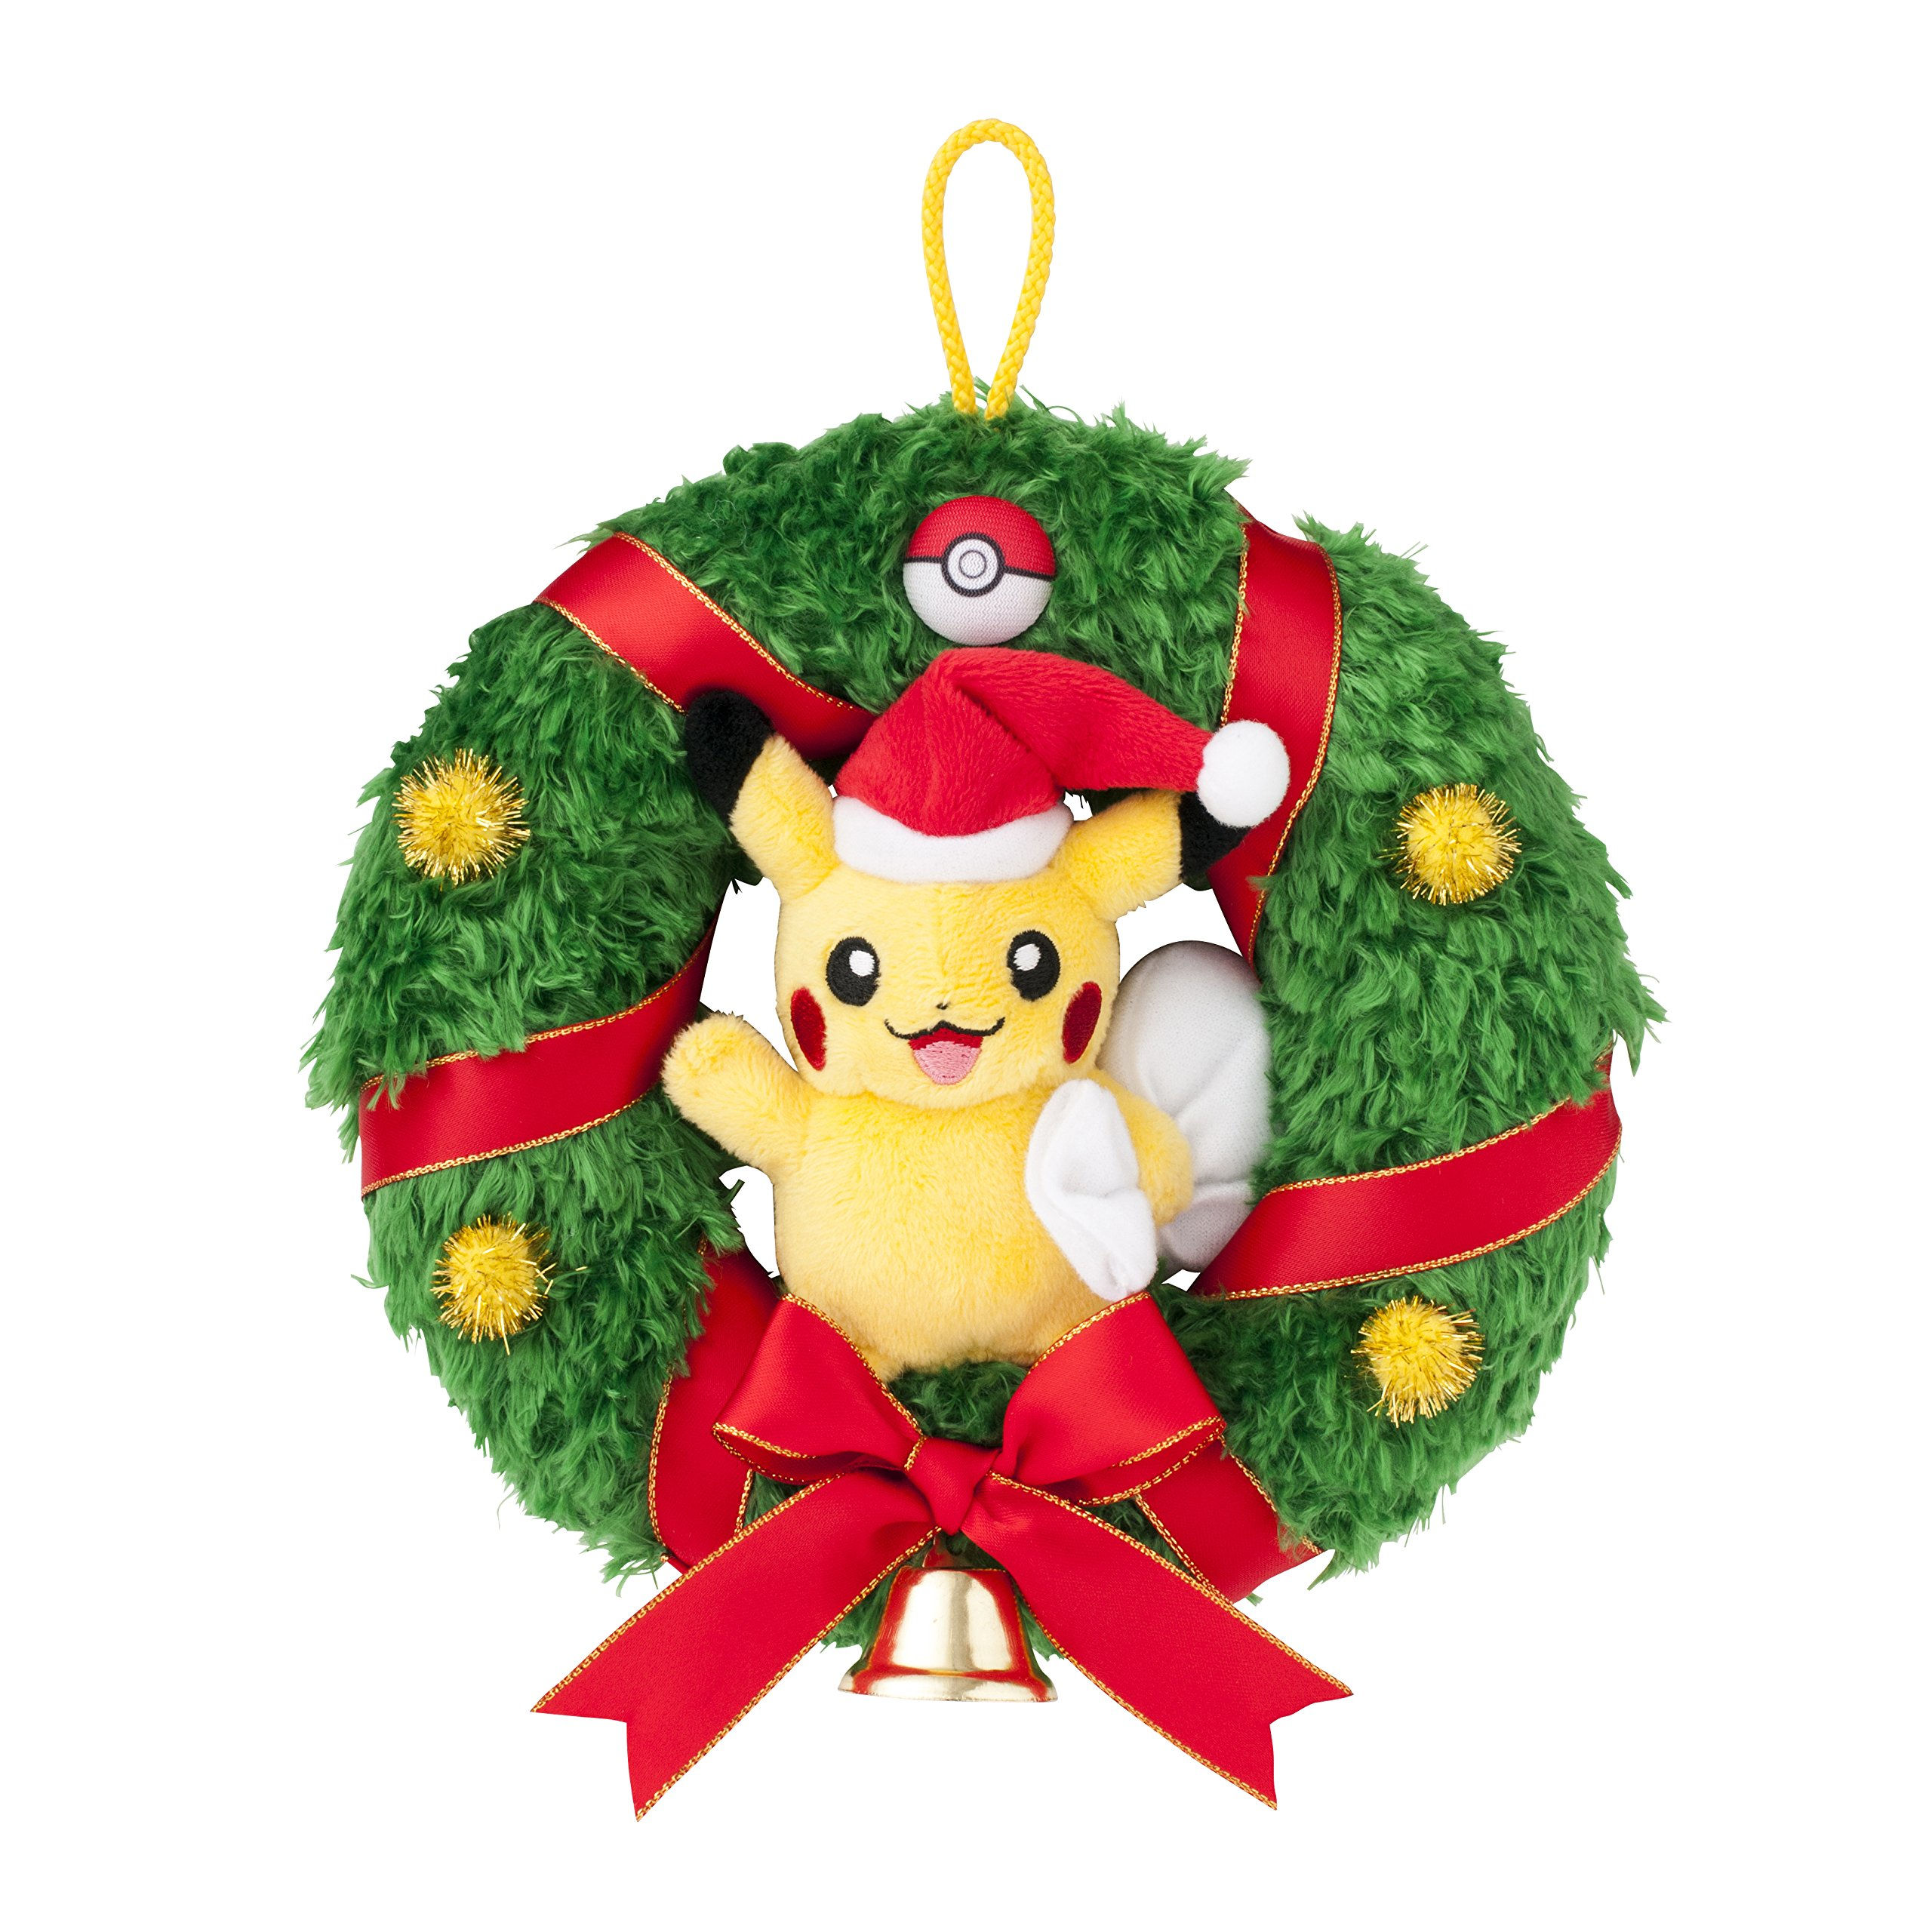 Pokemon Christmas.Pikachu Plush Christmas Wreath Pokemon Center Original Version